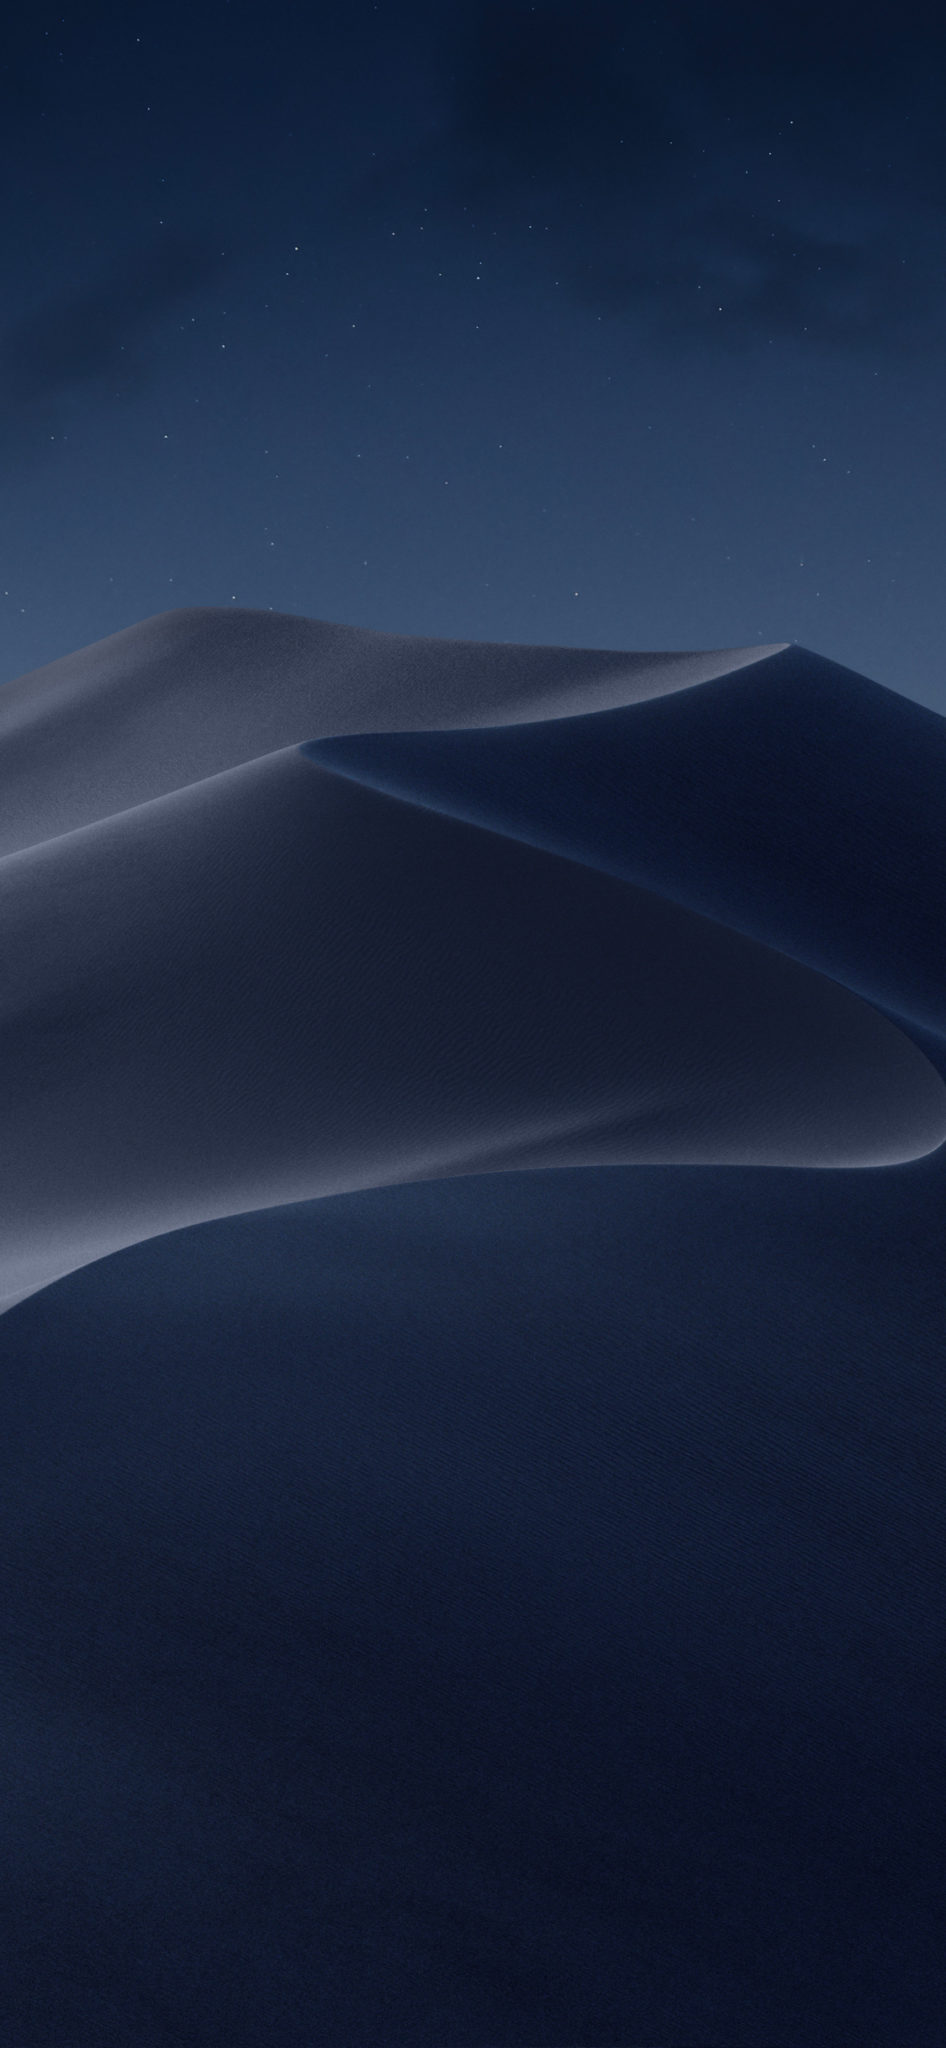 Macos Mojave Wallpapers For Desktop And Iphone Lápiz Gráfico